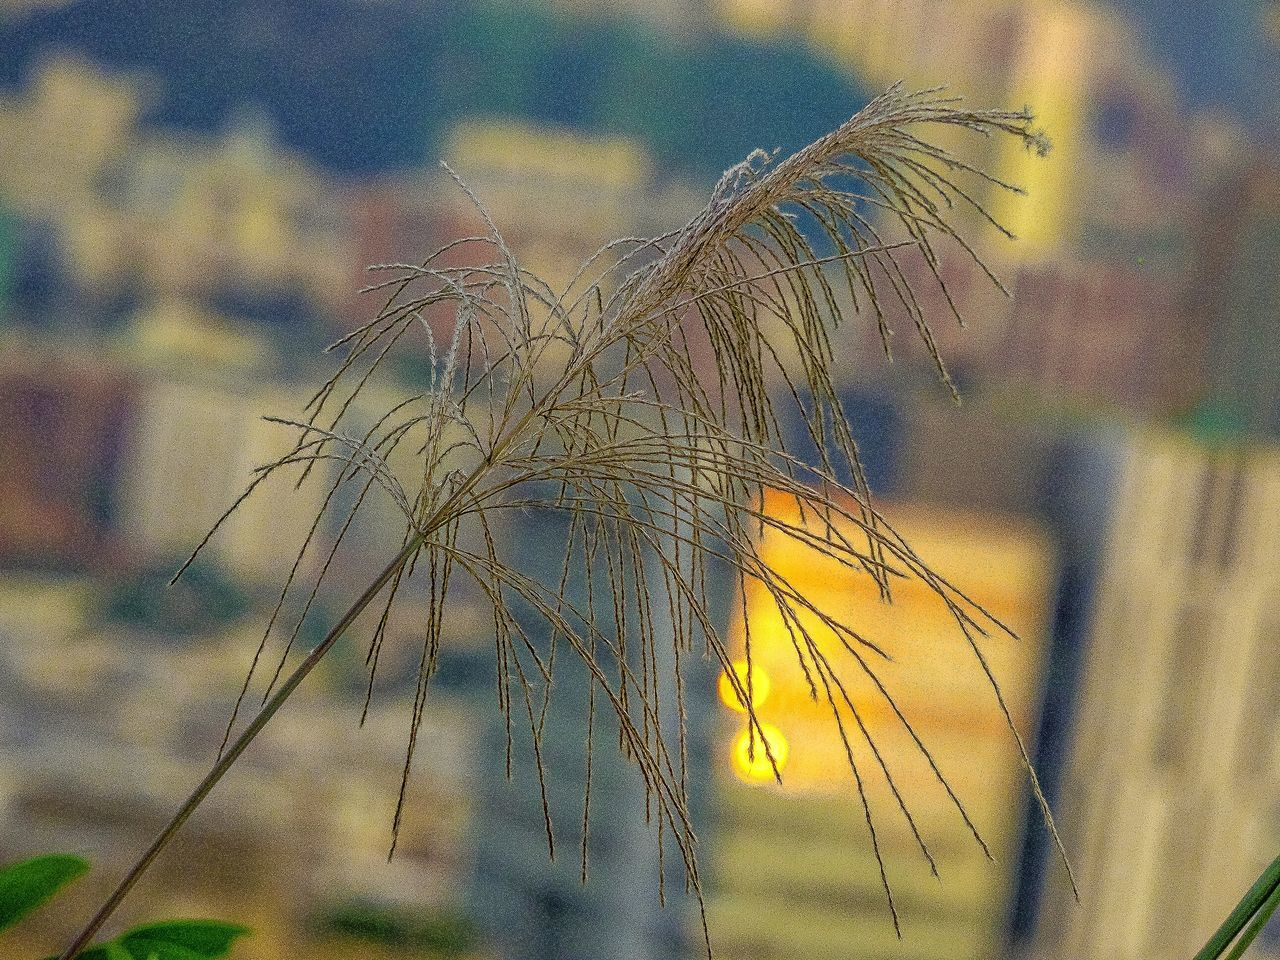 Grass Flowers Grass And City EyeEm Best Shots - Nature EyeEm Gallery Evening Light Flowers Beautiful Nature Natural Beauty Nature Photography EyeEm Nature Lover My Unique Style My Point Of View Artistic Expression Nature On Your Doorstep Hiking_walking Wild Flowers